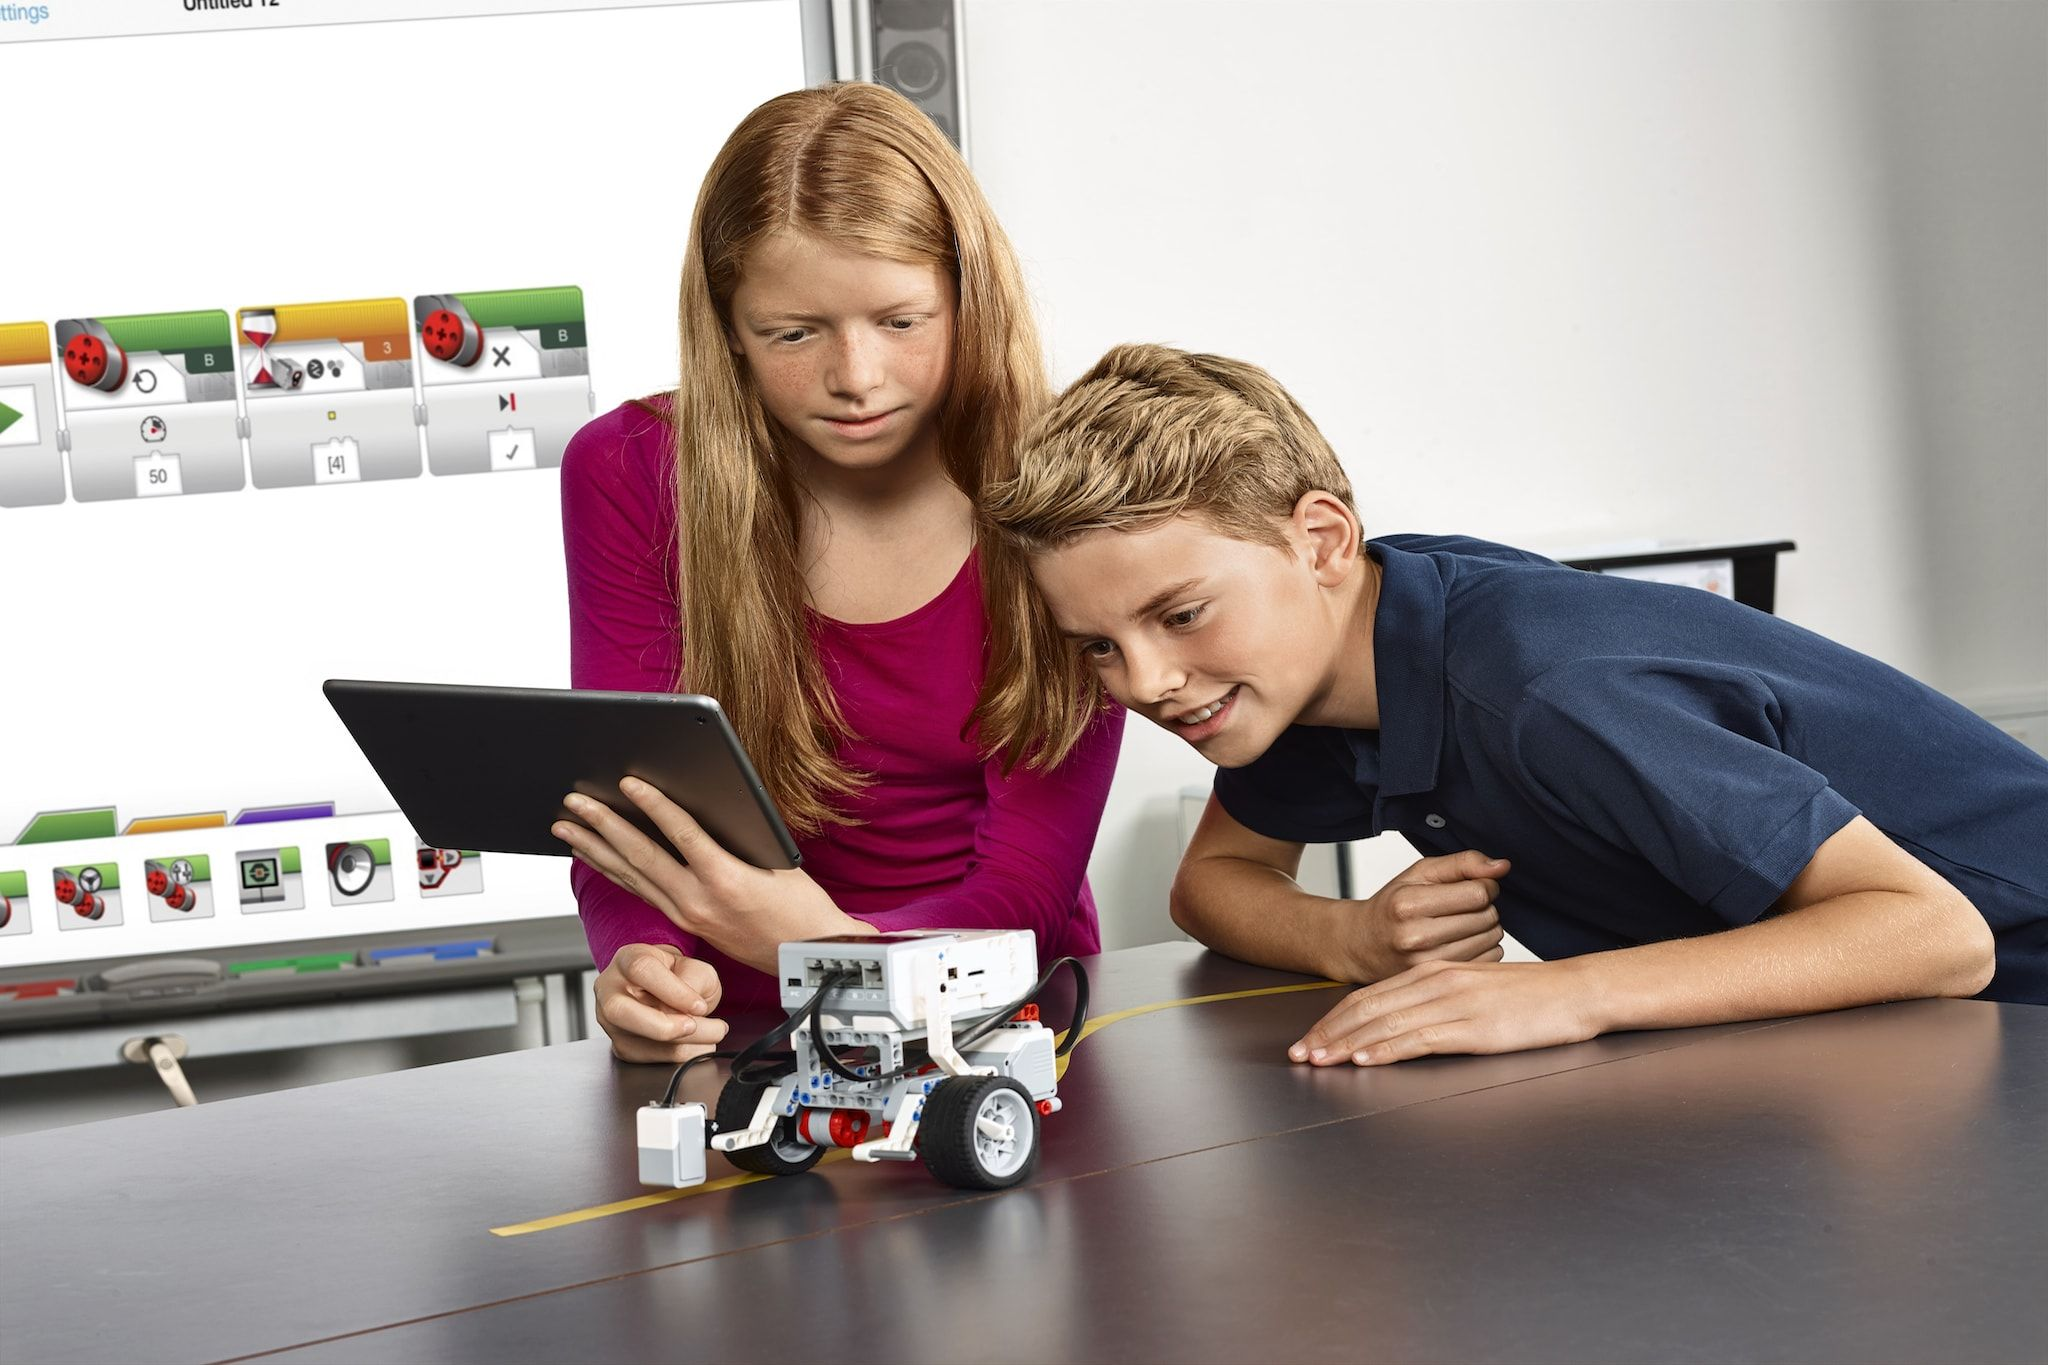 LEGO technology solutions for education